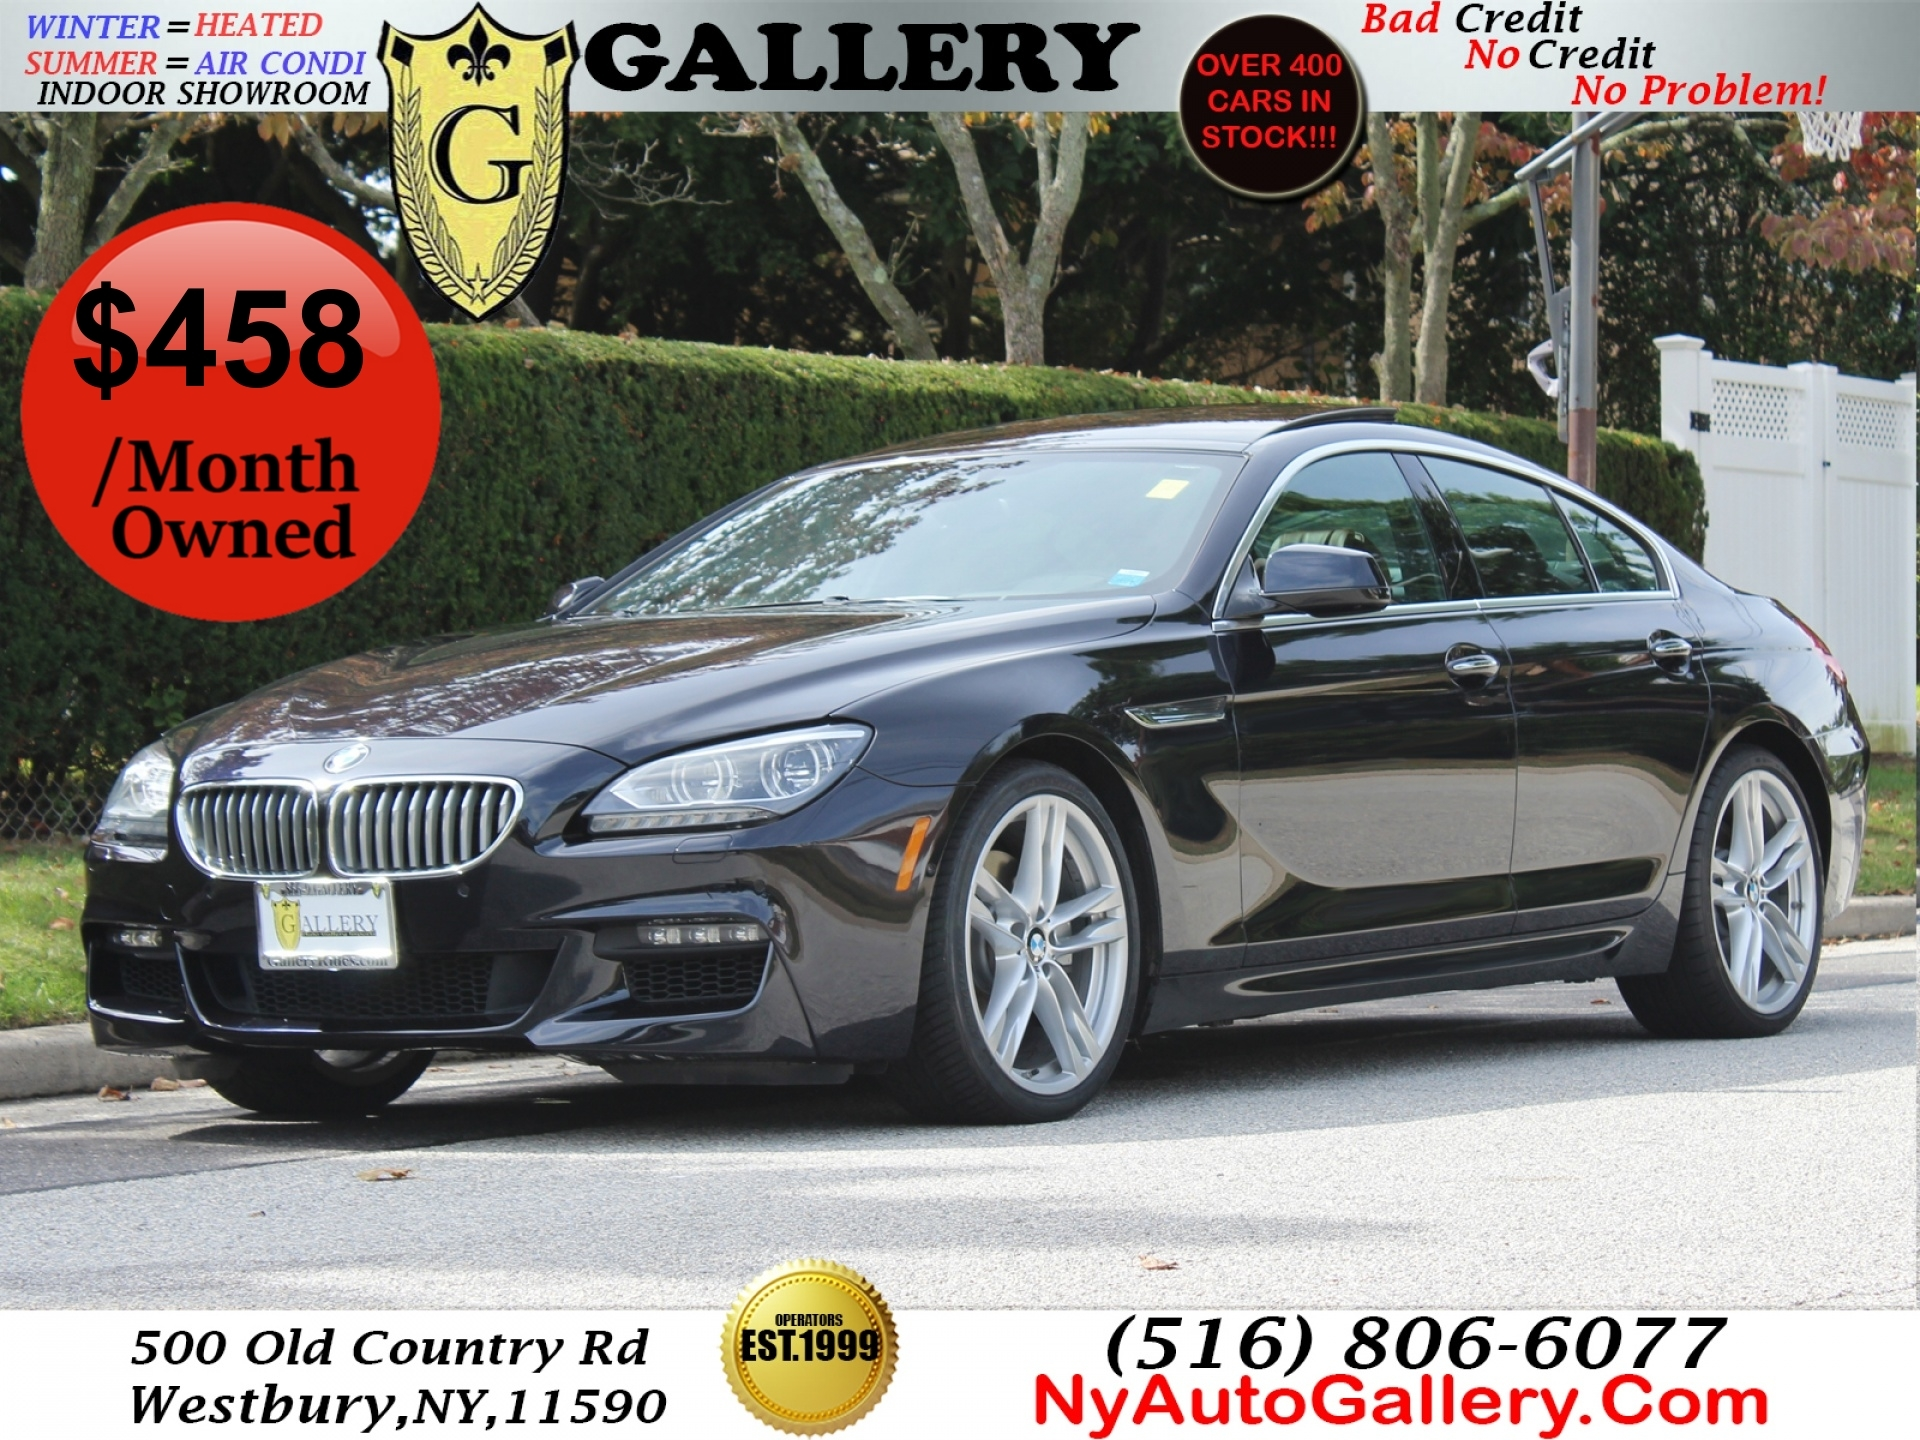 2012 bmw 6 series 650i coupe black sapphire metallic color black - 2013 Bmw 6 Series Carbon Black Metallic With 53597 Miles Available Now